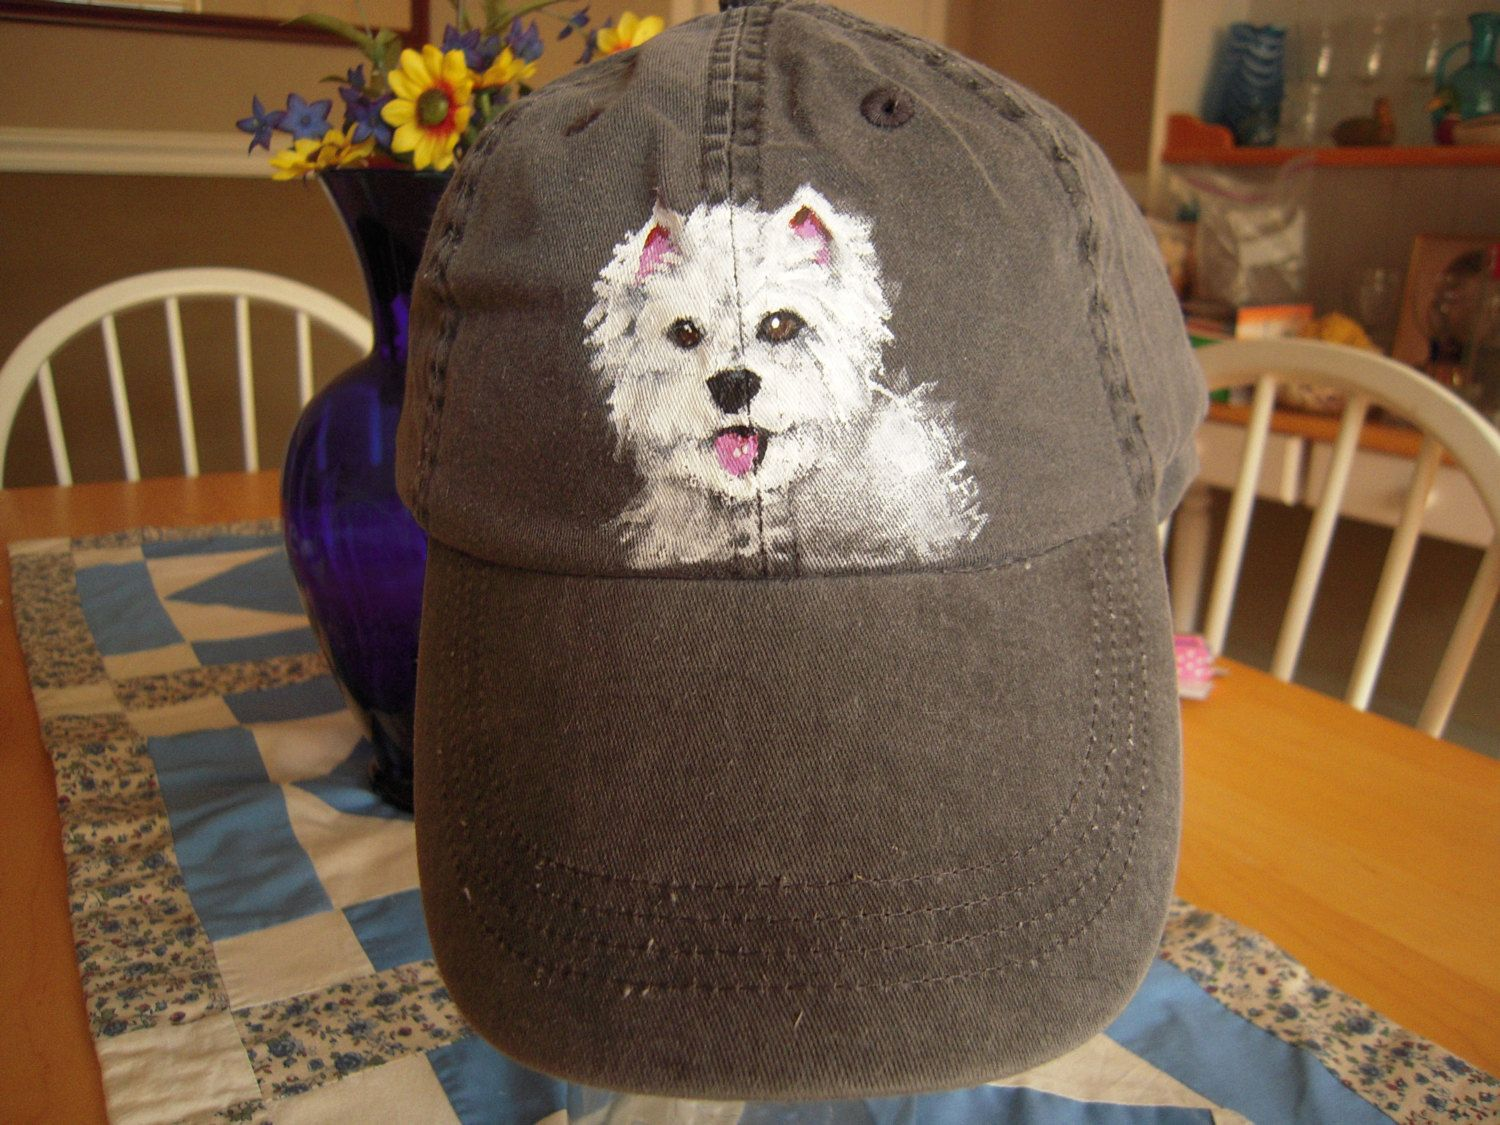 White baseball caps for crafts - Westie Westhighland Terrier White Hand Painted Baseball Cap By Anvil Metal Closure By Mactavishmitchellart On Etsy